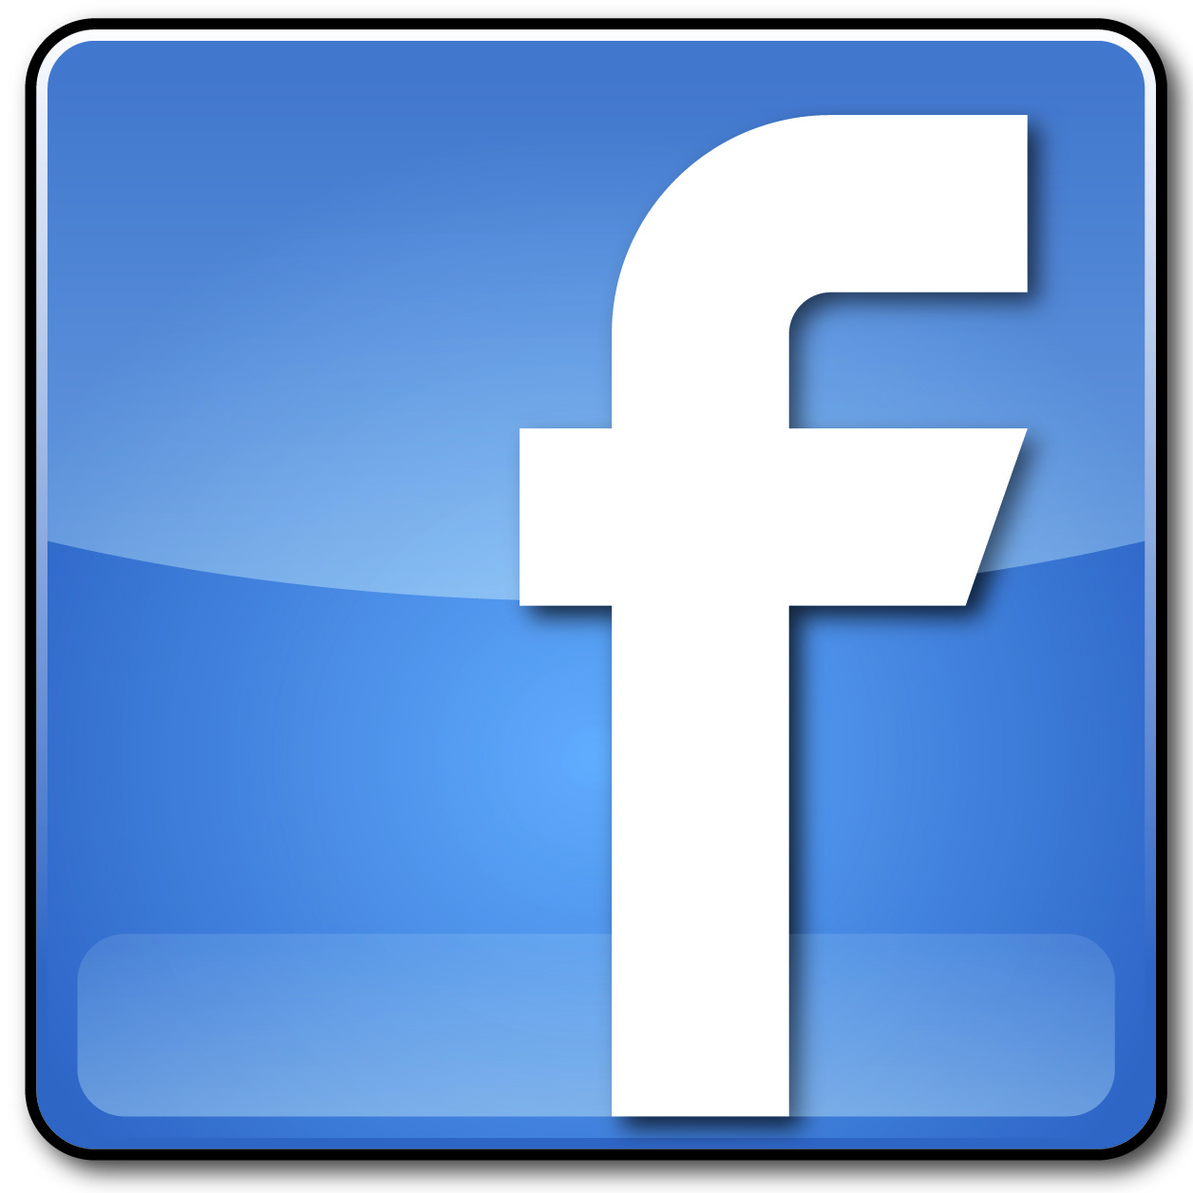 Facebook clip art. Like clipart free download